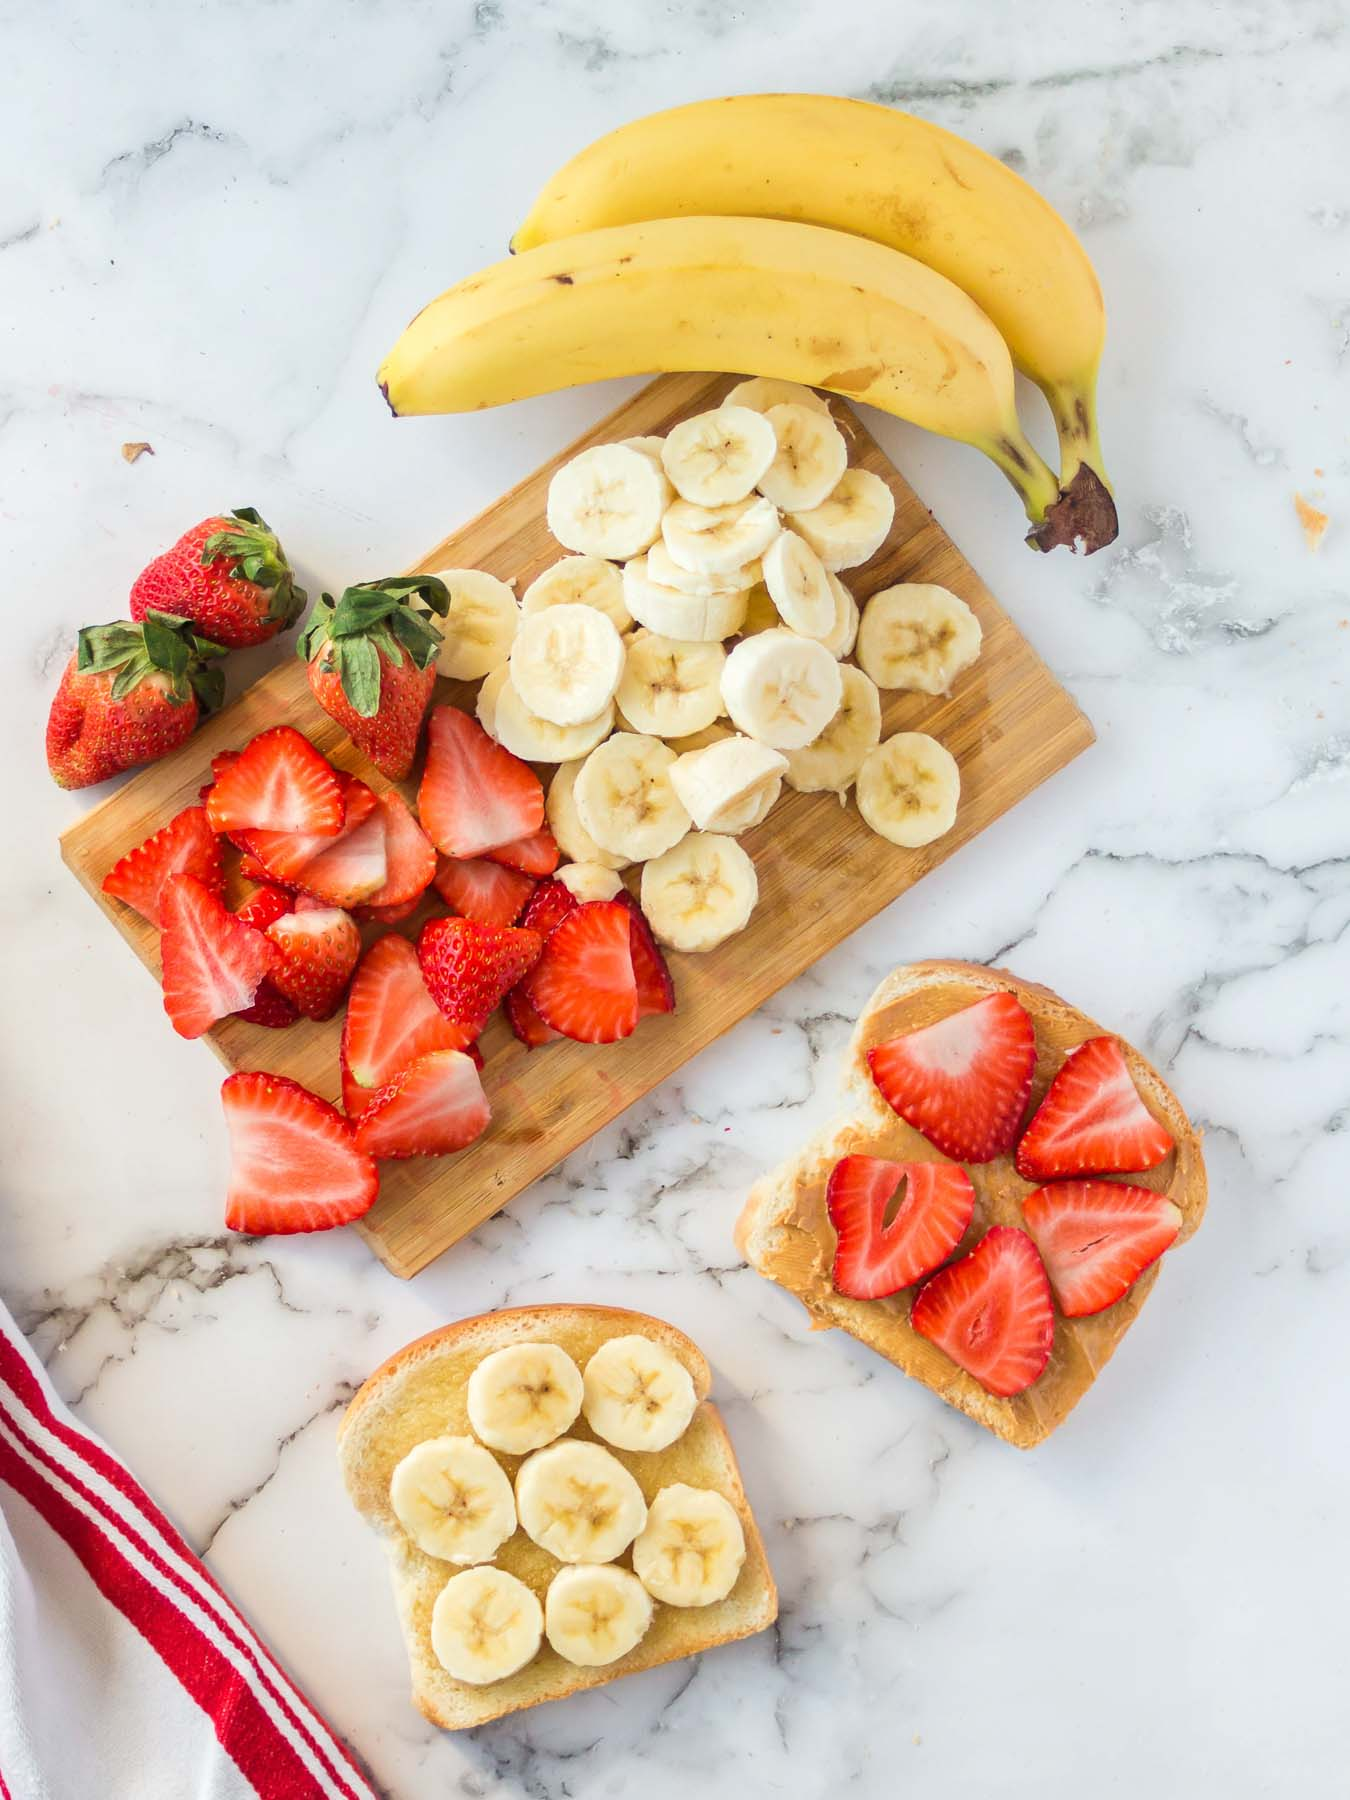 Peanut butter sandwich halves with banana slices and strawberry slices.